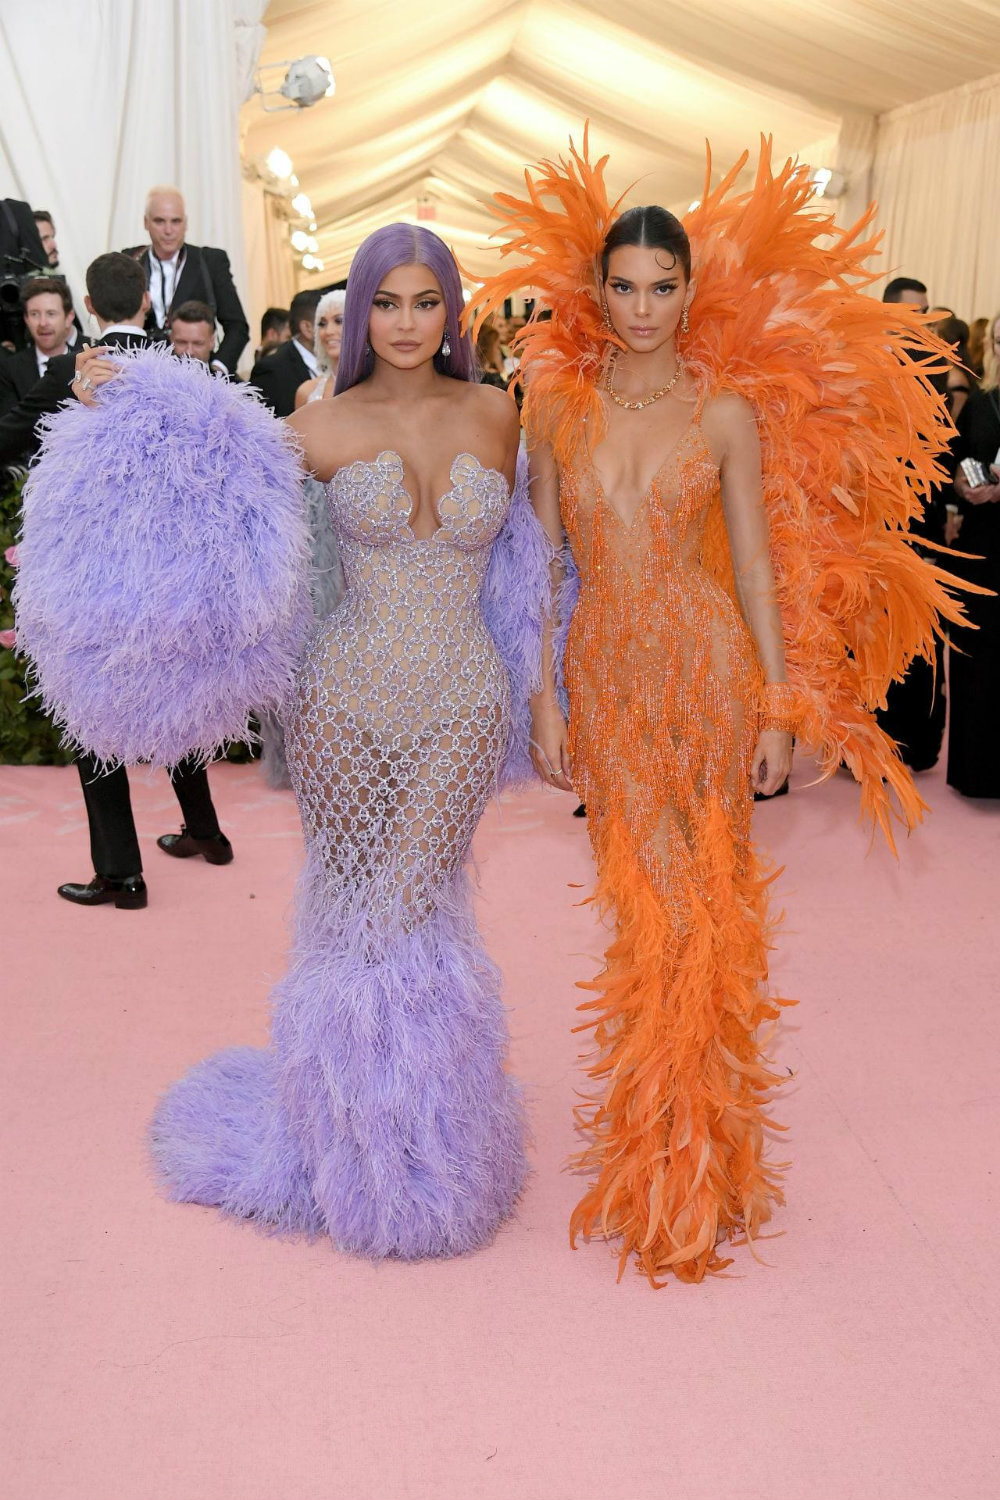 Met Gala 2019 Red Carpet - The Best Dressed 03 met gala 2019 red carpet Met Gala 2019 Red Carpet – The Best Dressed Met Gala 2019 Red Carpet The Best Dressed 03